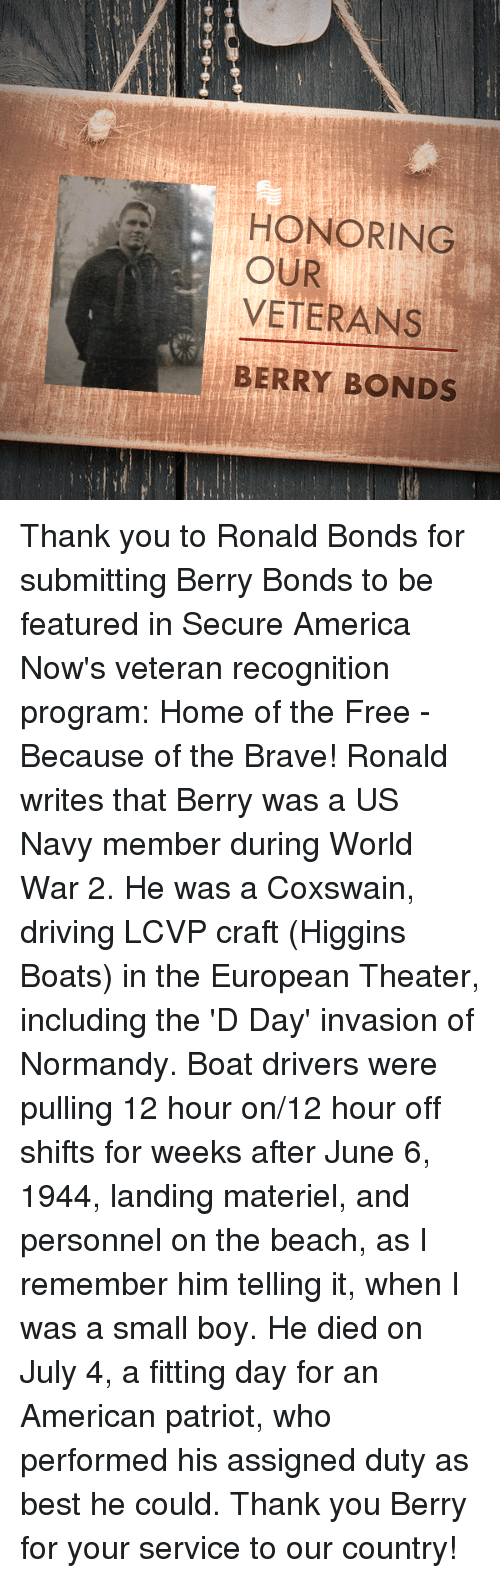 june 6 1944: HONORING  OUR  VETERANS  BERRY BONDS Thank you to Ronald Bonds for submitting Berry Bonds to be featured in Secure America Now's veteran recognition program: Home of the Free - Because of the Brave!  Ronald writes that Berry was a US Navy member during World War 2. He was a Coxswain, driving LCVP craft (Higgins Boats) in the European Theater, including the 'D Day' invasion of Normandy. Boat drivers were pulling 12 hour on/12 hour off shifts for weeks after June 6, 1944, landing materiel, and personnel on the beach, as I remember him telling it, when I was a small boy. He died on July 4, a fitting day for an American patriot, who performed his assigned duty as best he could.  Thank you Berry for your service to our country!